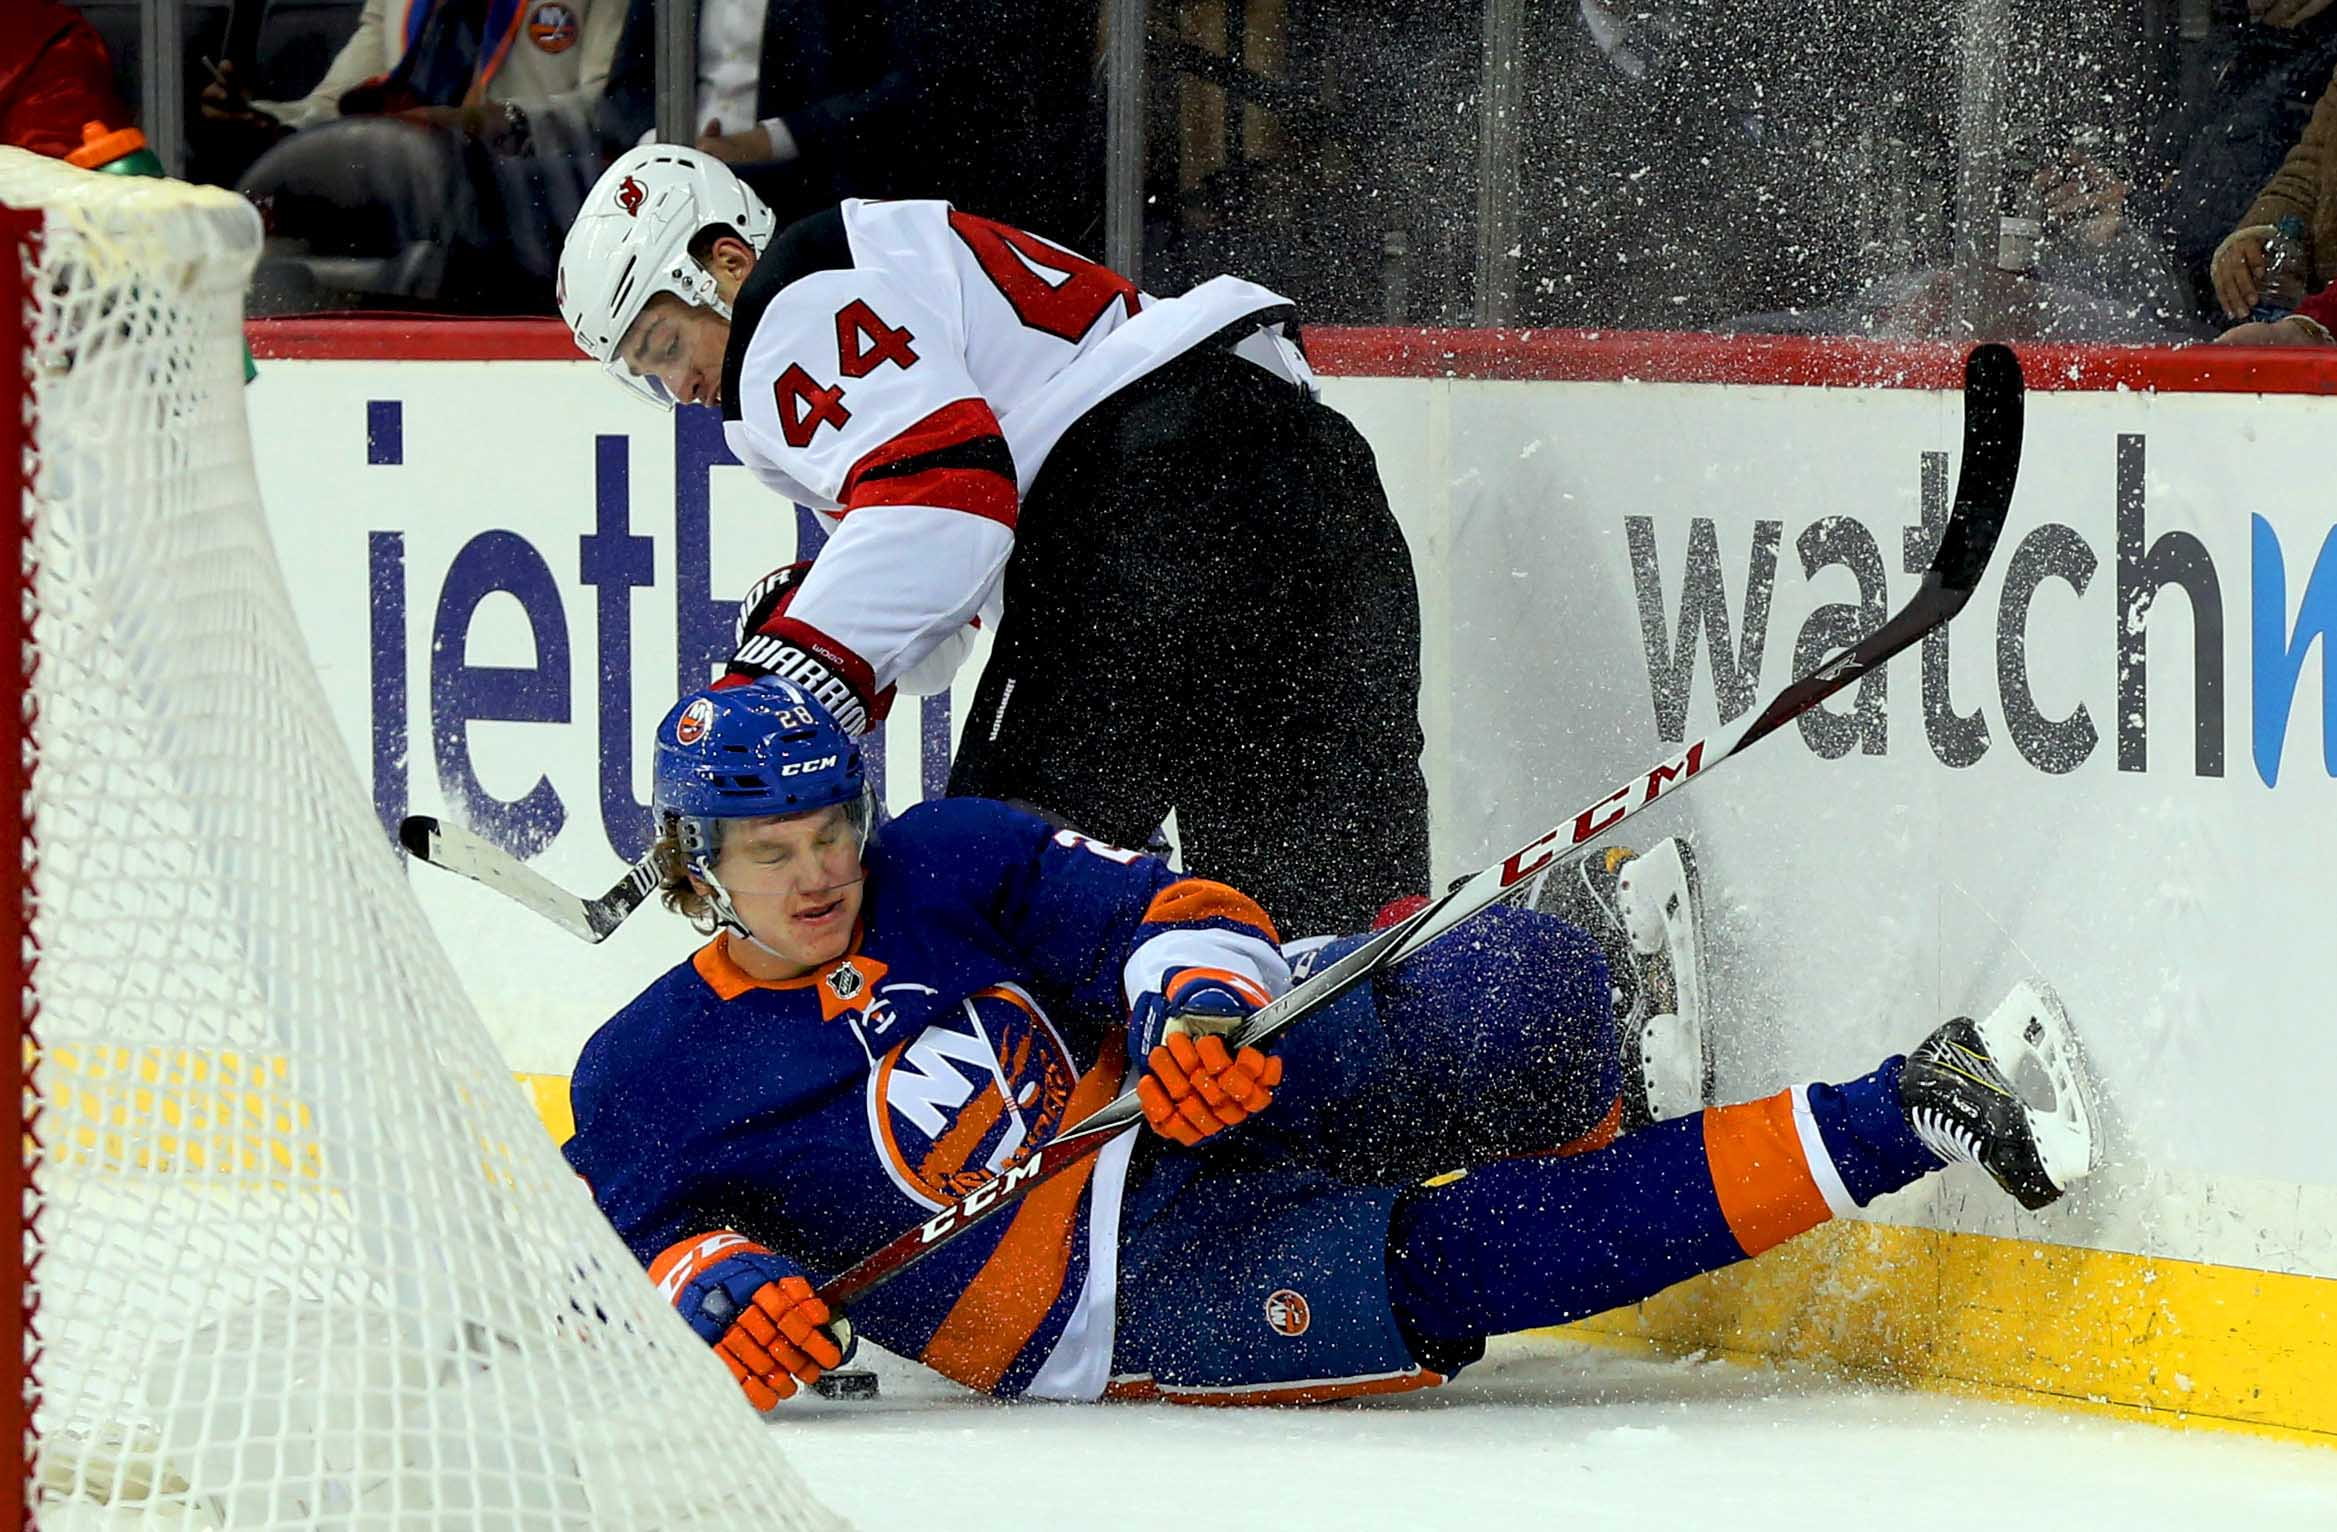 Jan 16, 2018; Brooklyn, NY, USA; New Jersey Devils left wing Miles Wood (44) and New York Islanders defenseman Sebastian Aho (28) collide at the boards during the first period at Barclays Center. Mandatory Credit: Andy Marlin-USA TODAY Sports